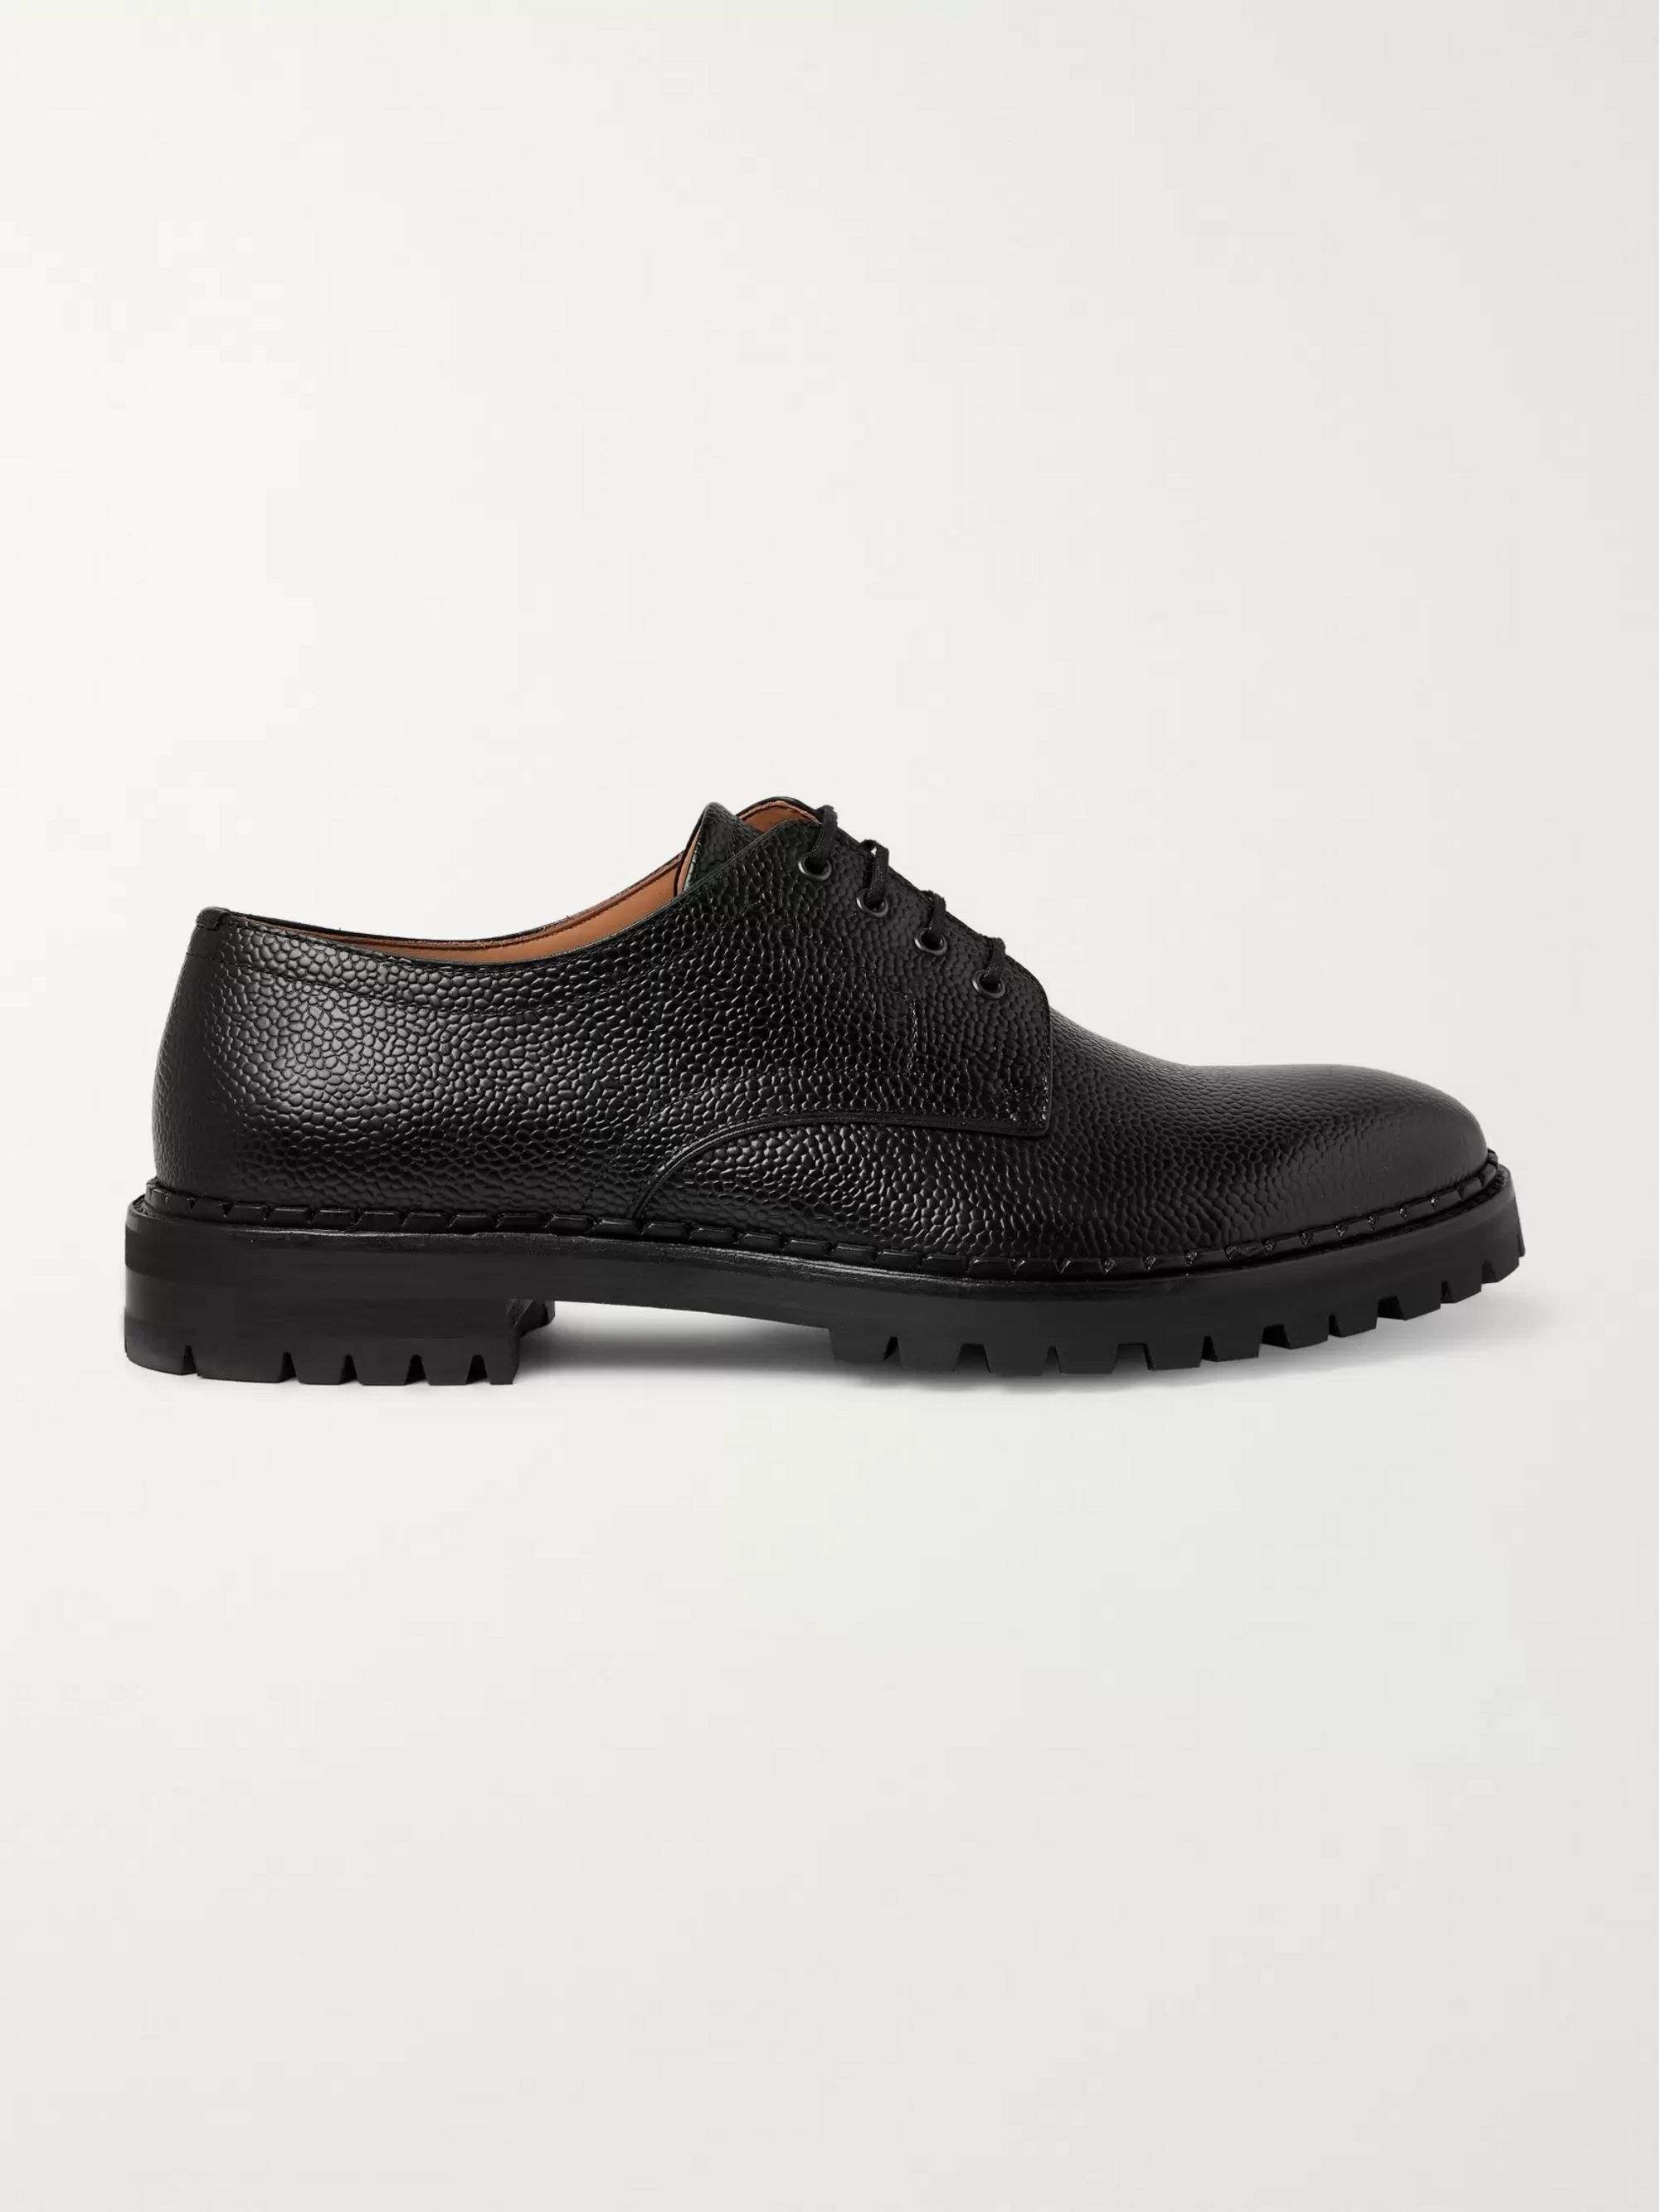 Lanvin Pebble-Grain Leather Derby Shoes